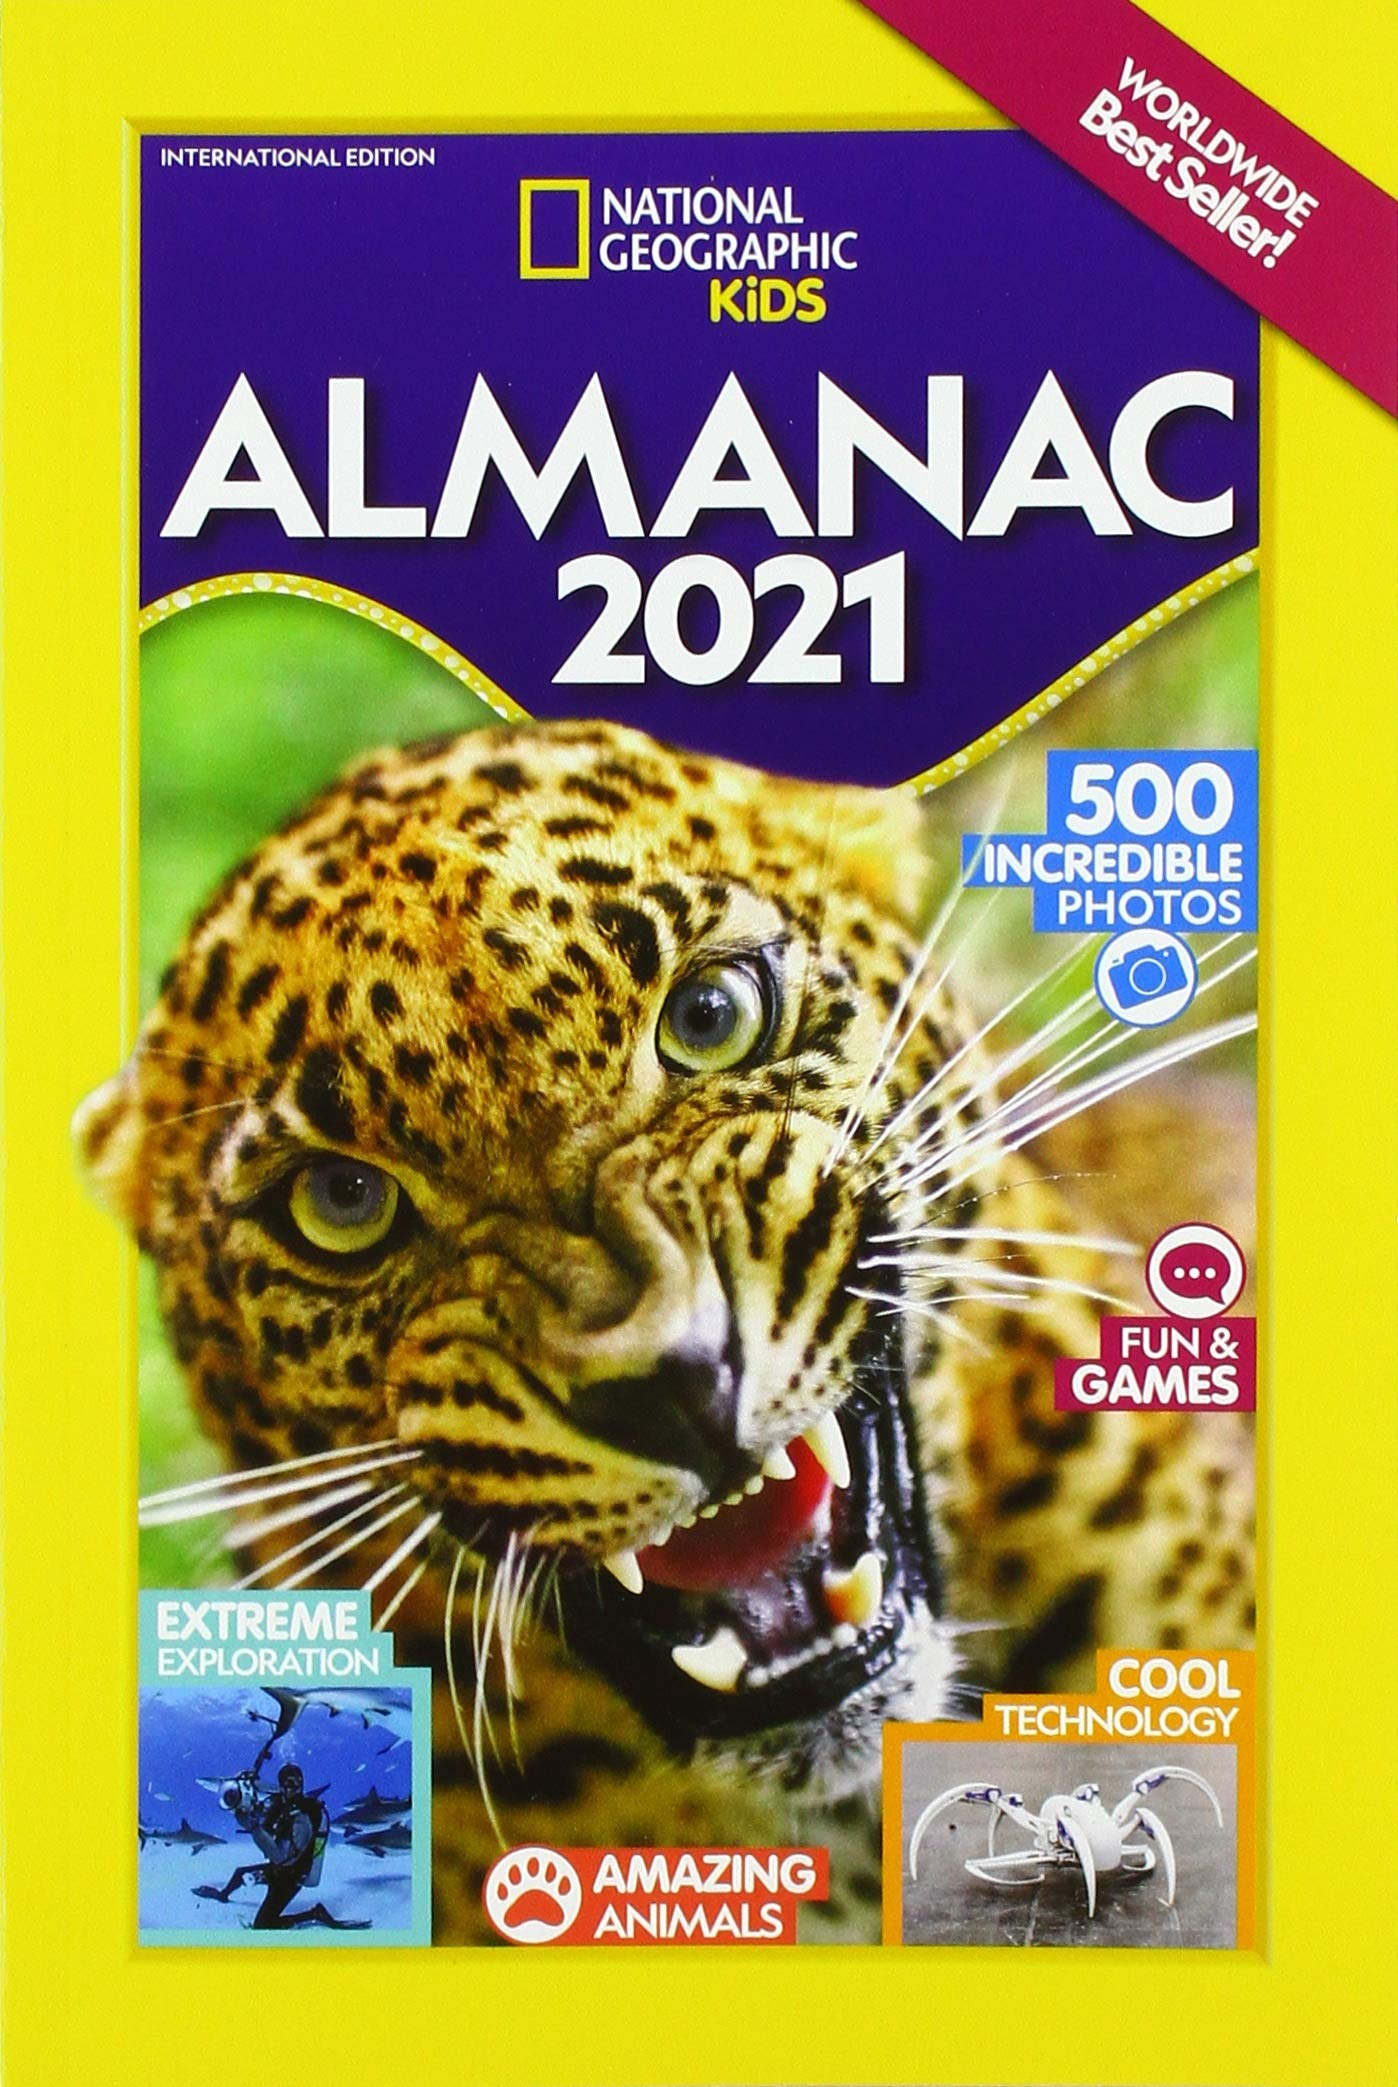 Nytimes Best Sellers 2021 National Geographic Kids Almanac 2021 International Edition